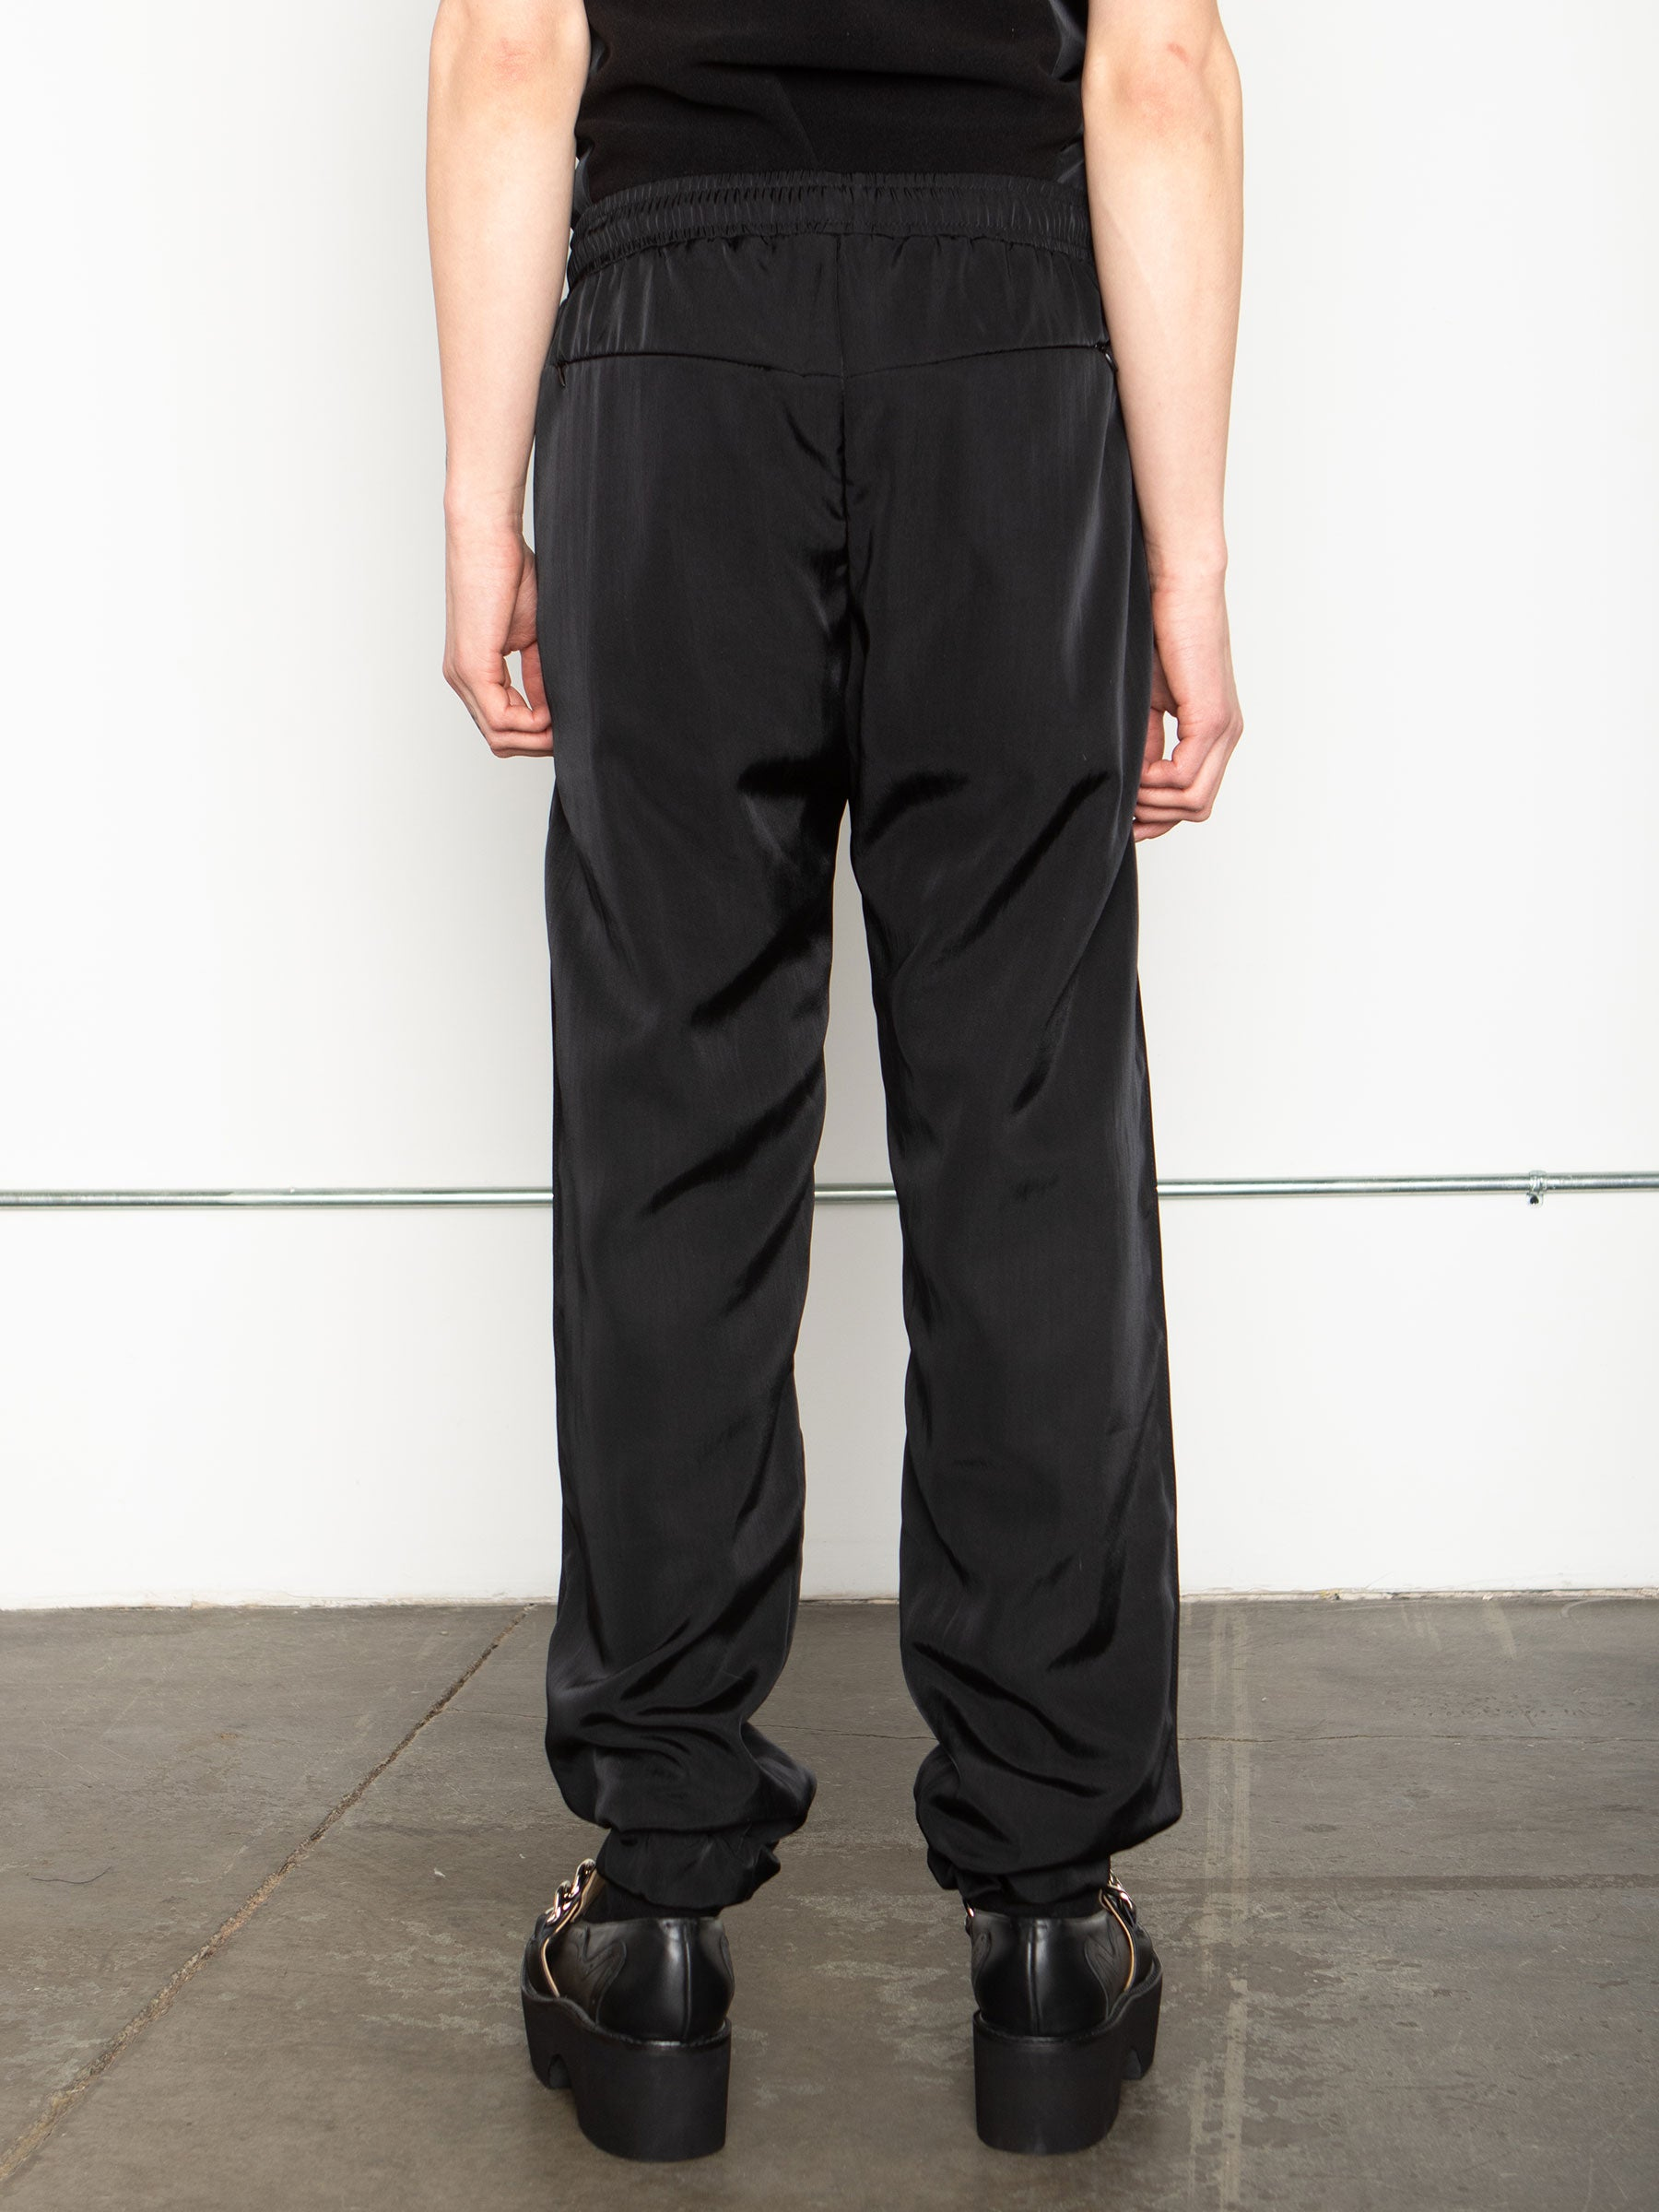 odd92 Shop Cottweiler Spring/Summer 2020 Menswear Black Caddie Track Pants - 6